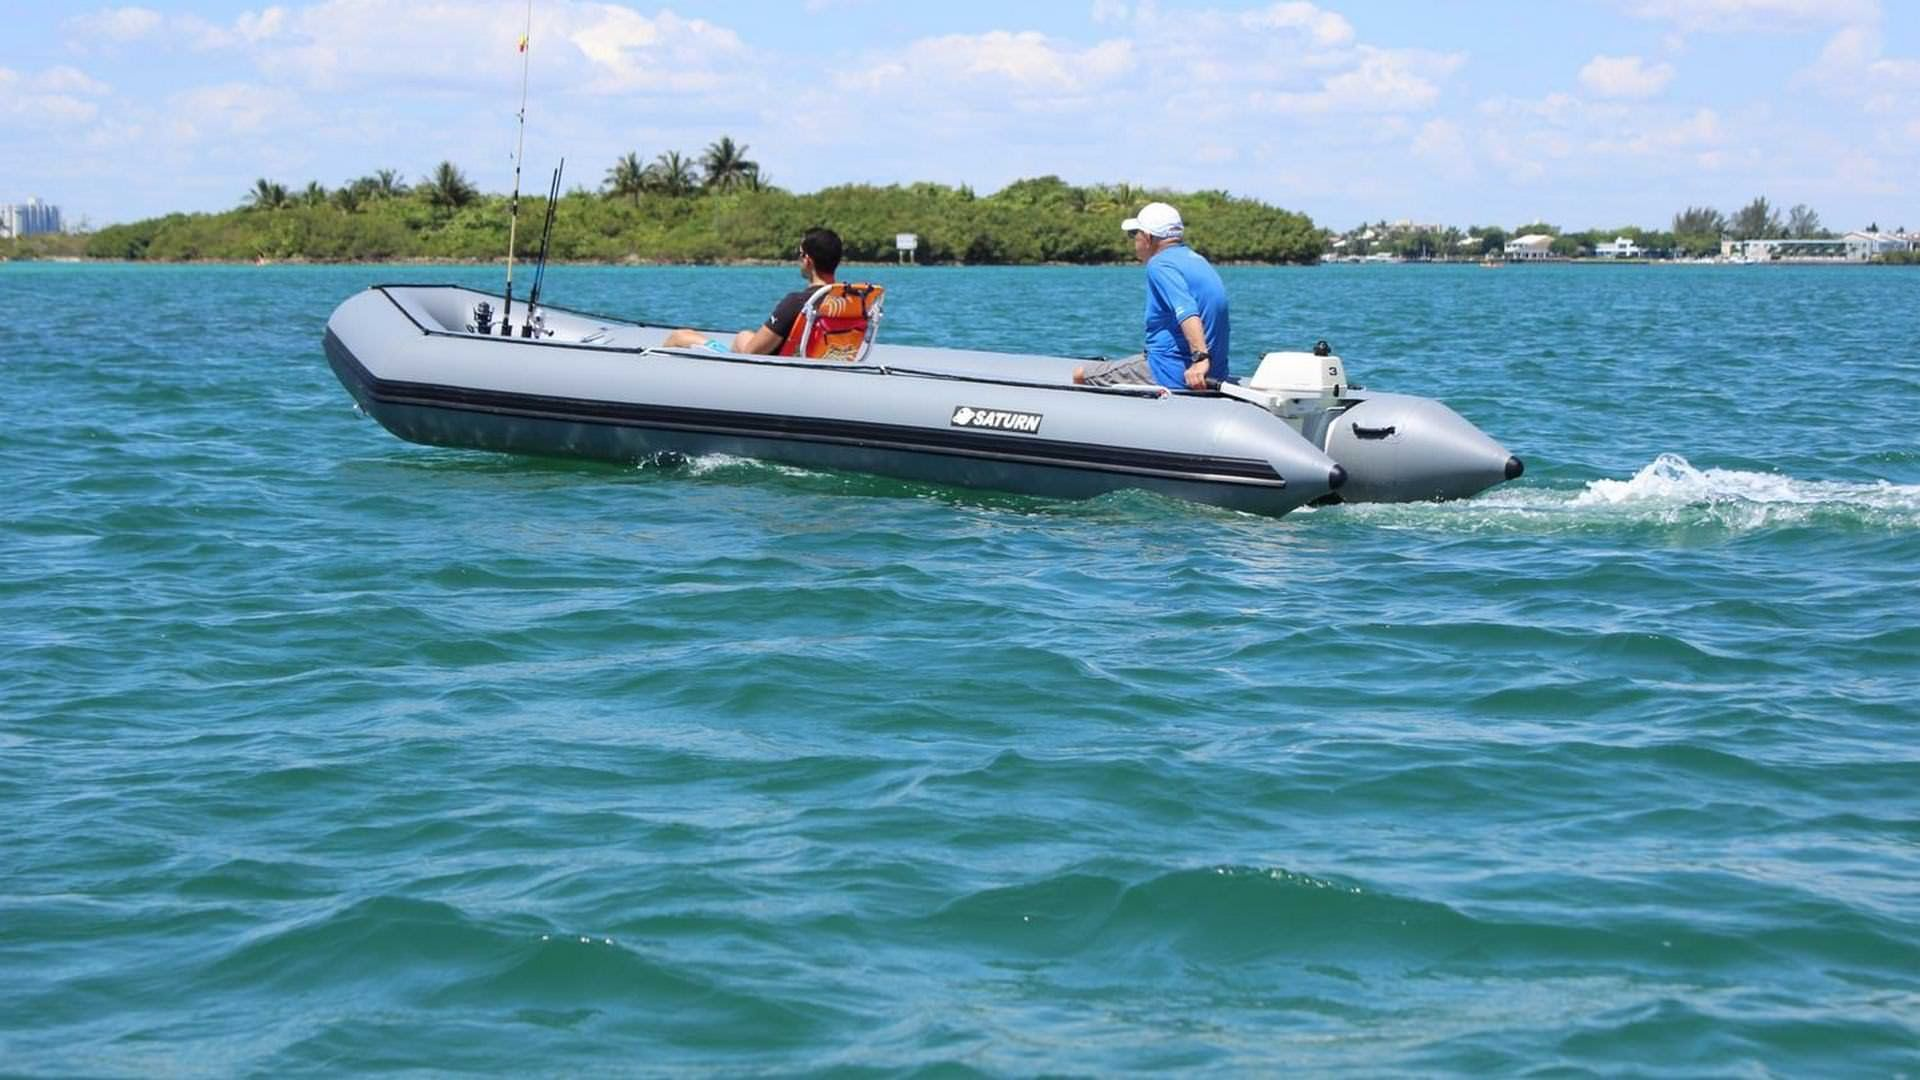 Saturn 20 39 Sd600 Inflatable Boat With 3hp Outboard Motor